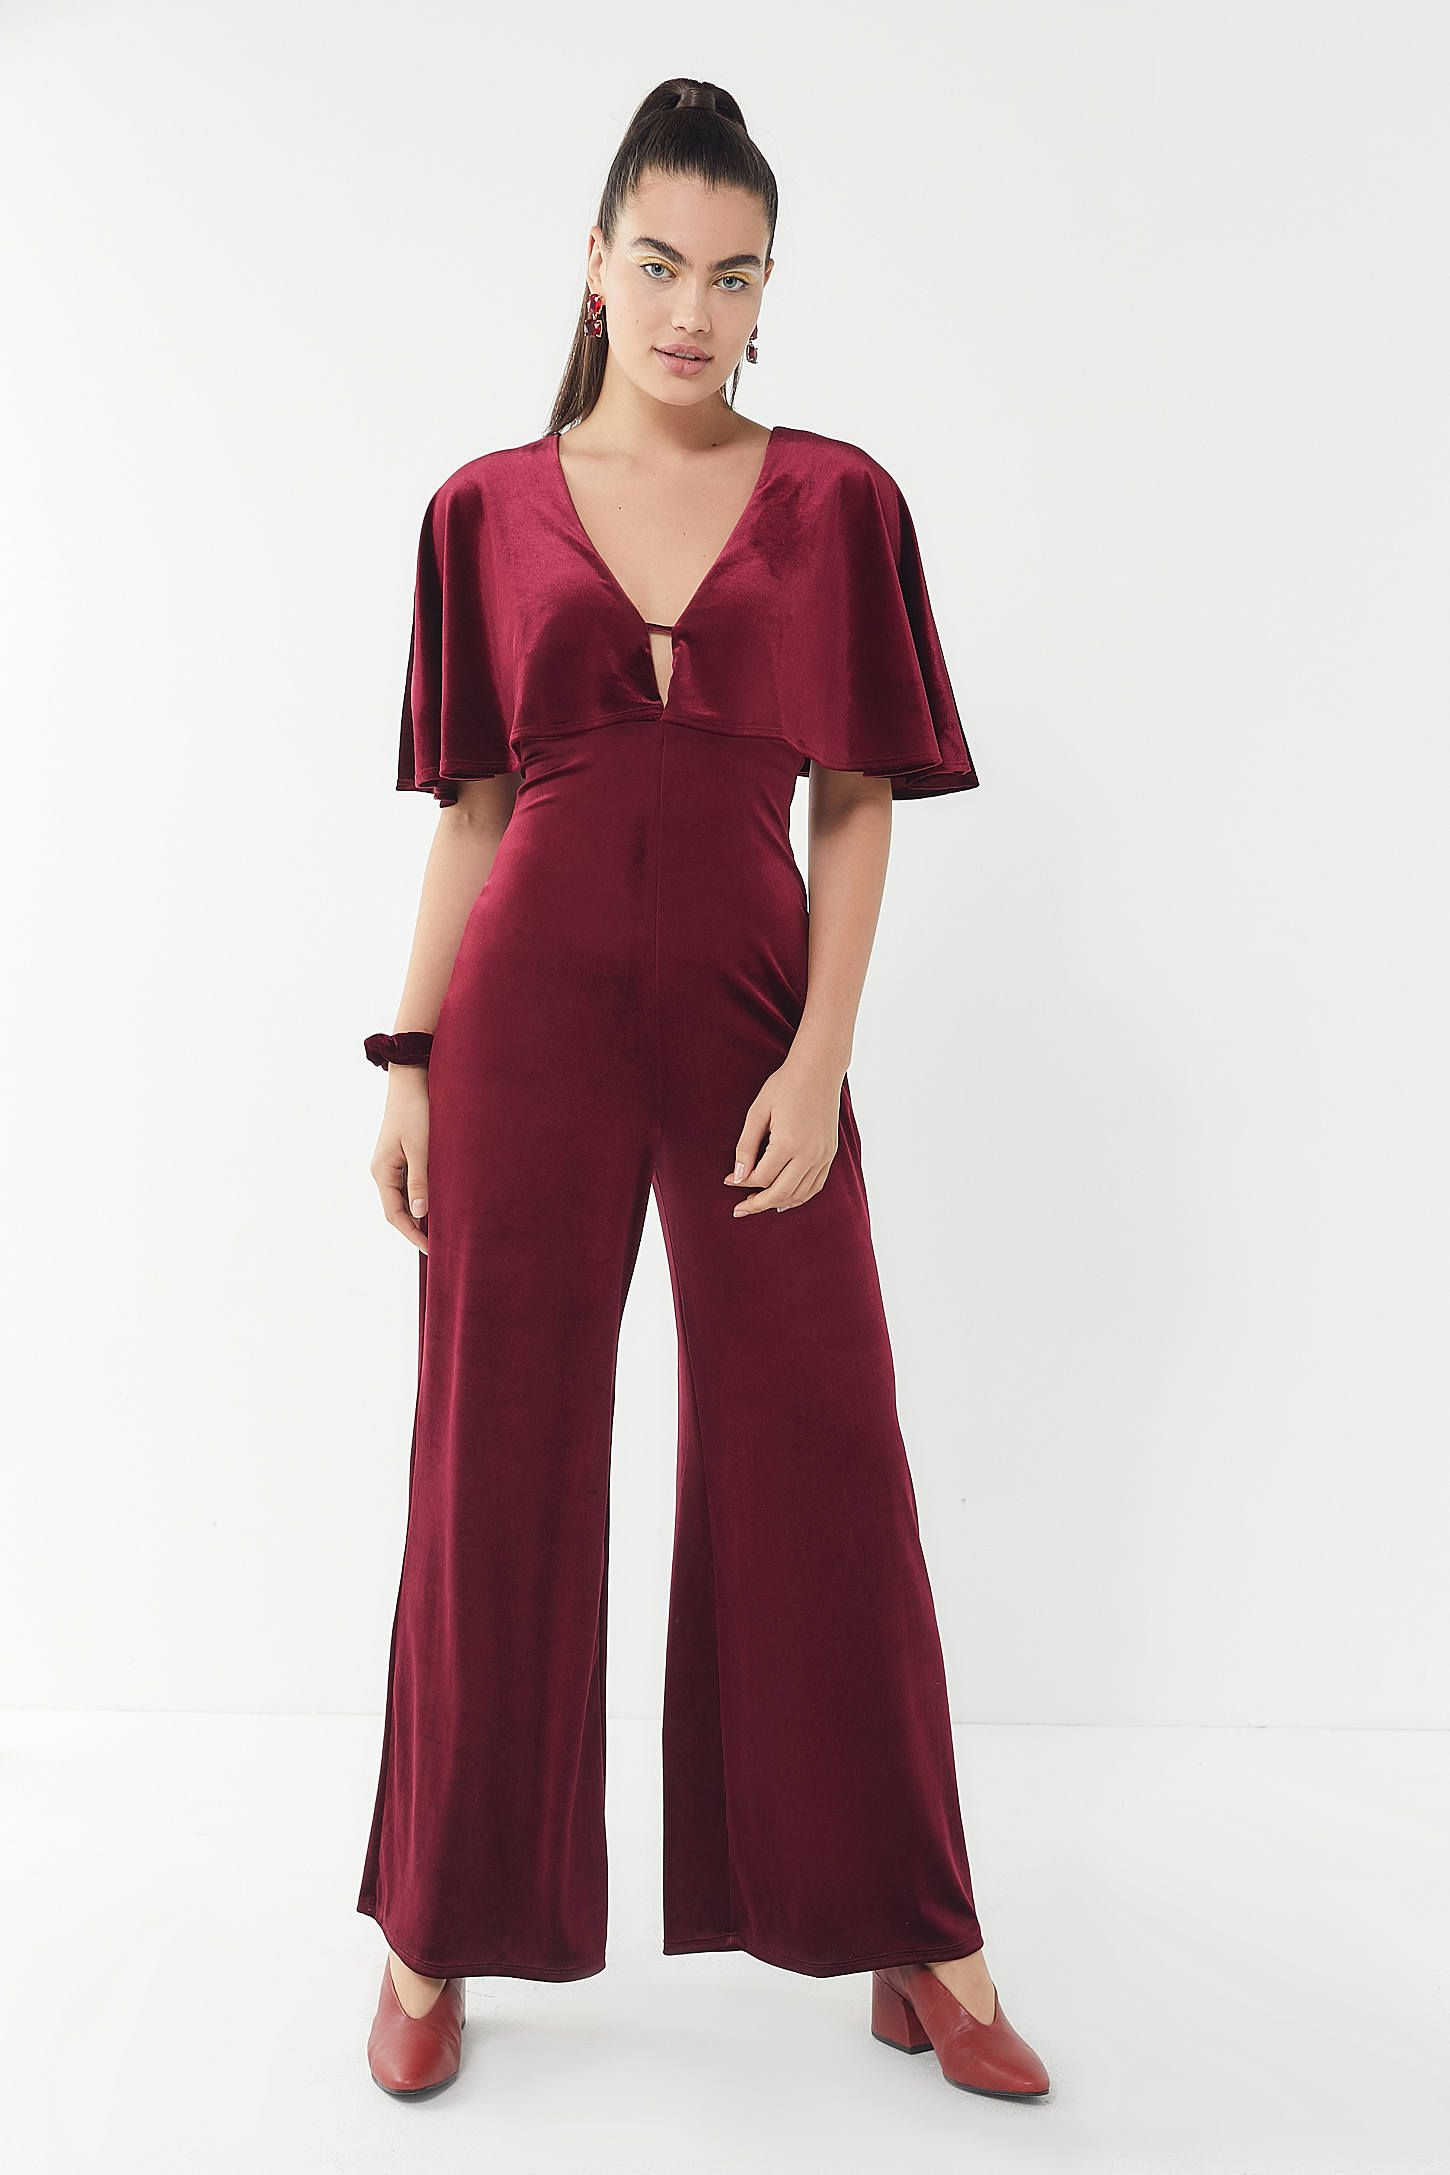 c82525bc4ccd Inexpensive Holiday Party Dresses | Saddha